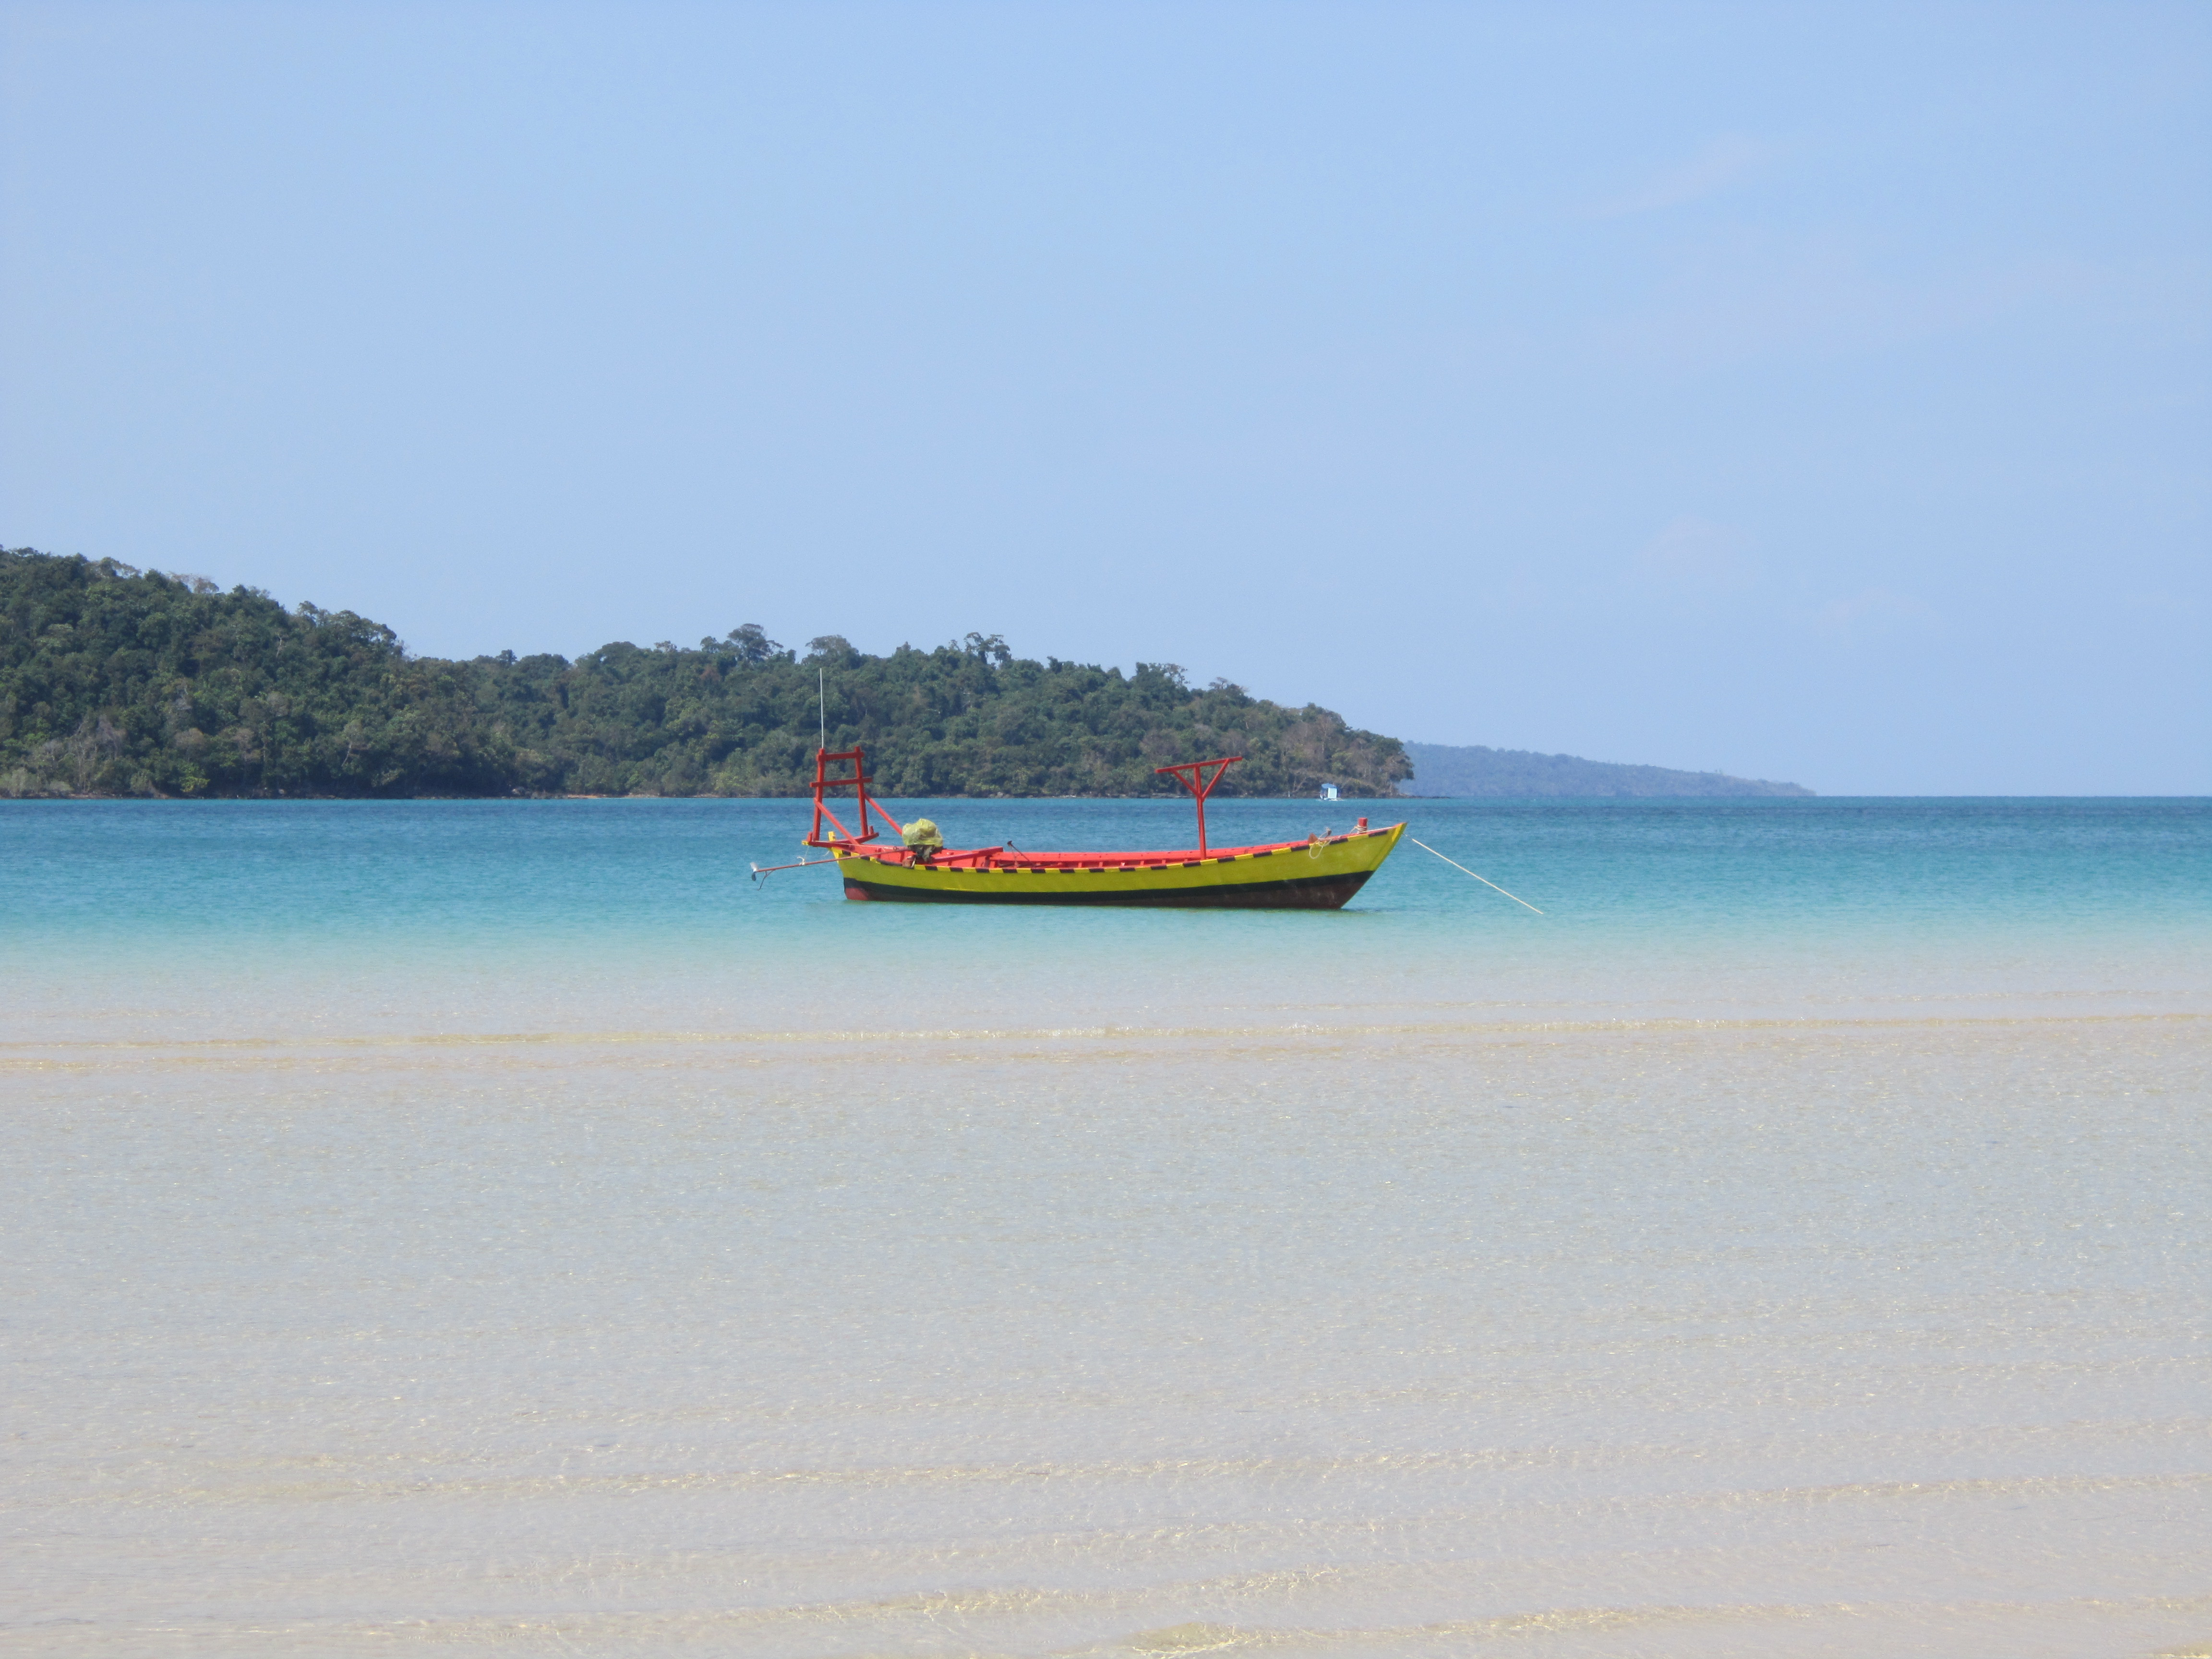 Boat on blue water with sand in the foreground. M'pai bay, Koh Rong Sanloem, Cambodia